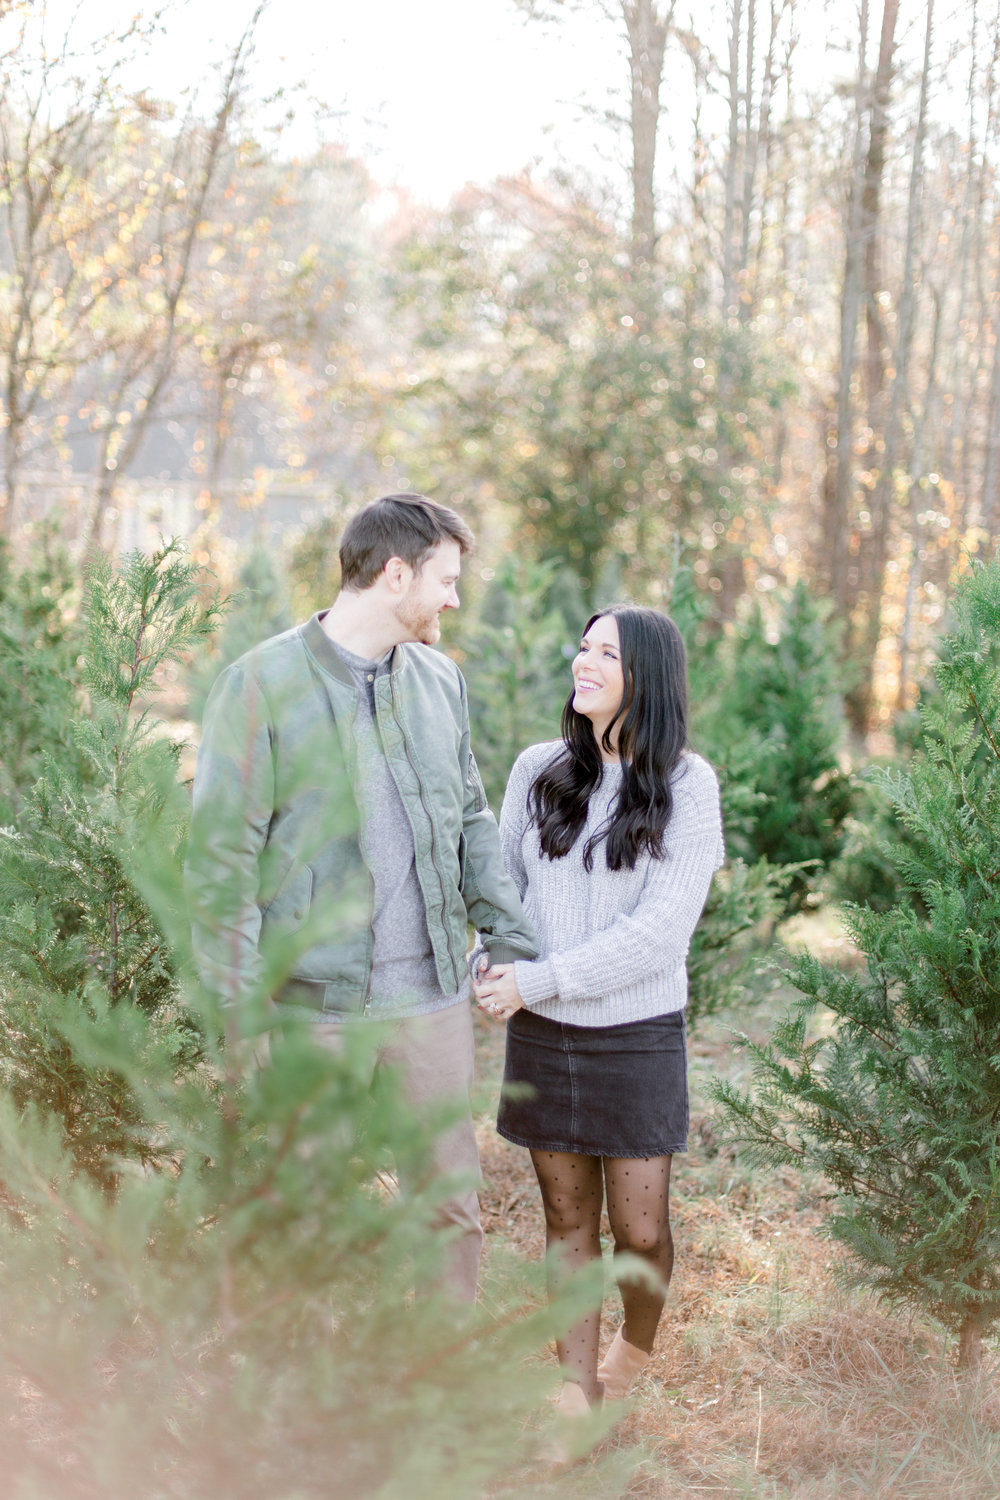 Jessica Sgubin Photography Atlanta Photographer Atlanta Portrait Photographer Atlanta engagement photographer atlanta family photographer atlanta baby photograpehr-22.jpg